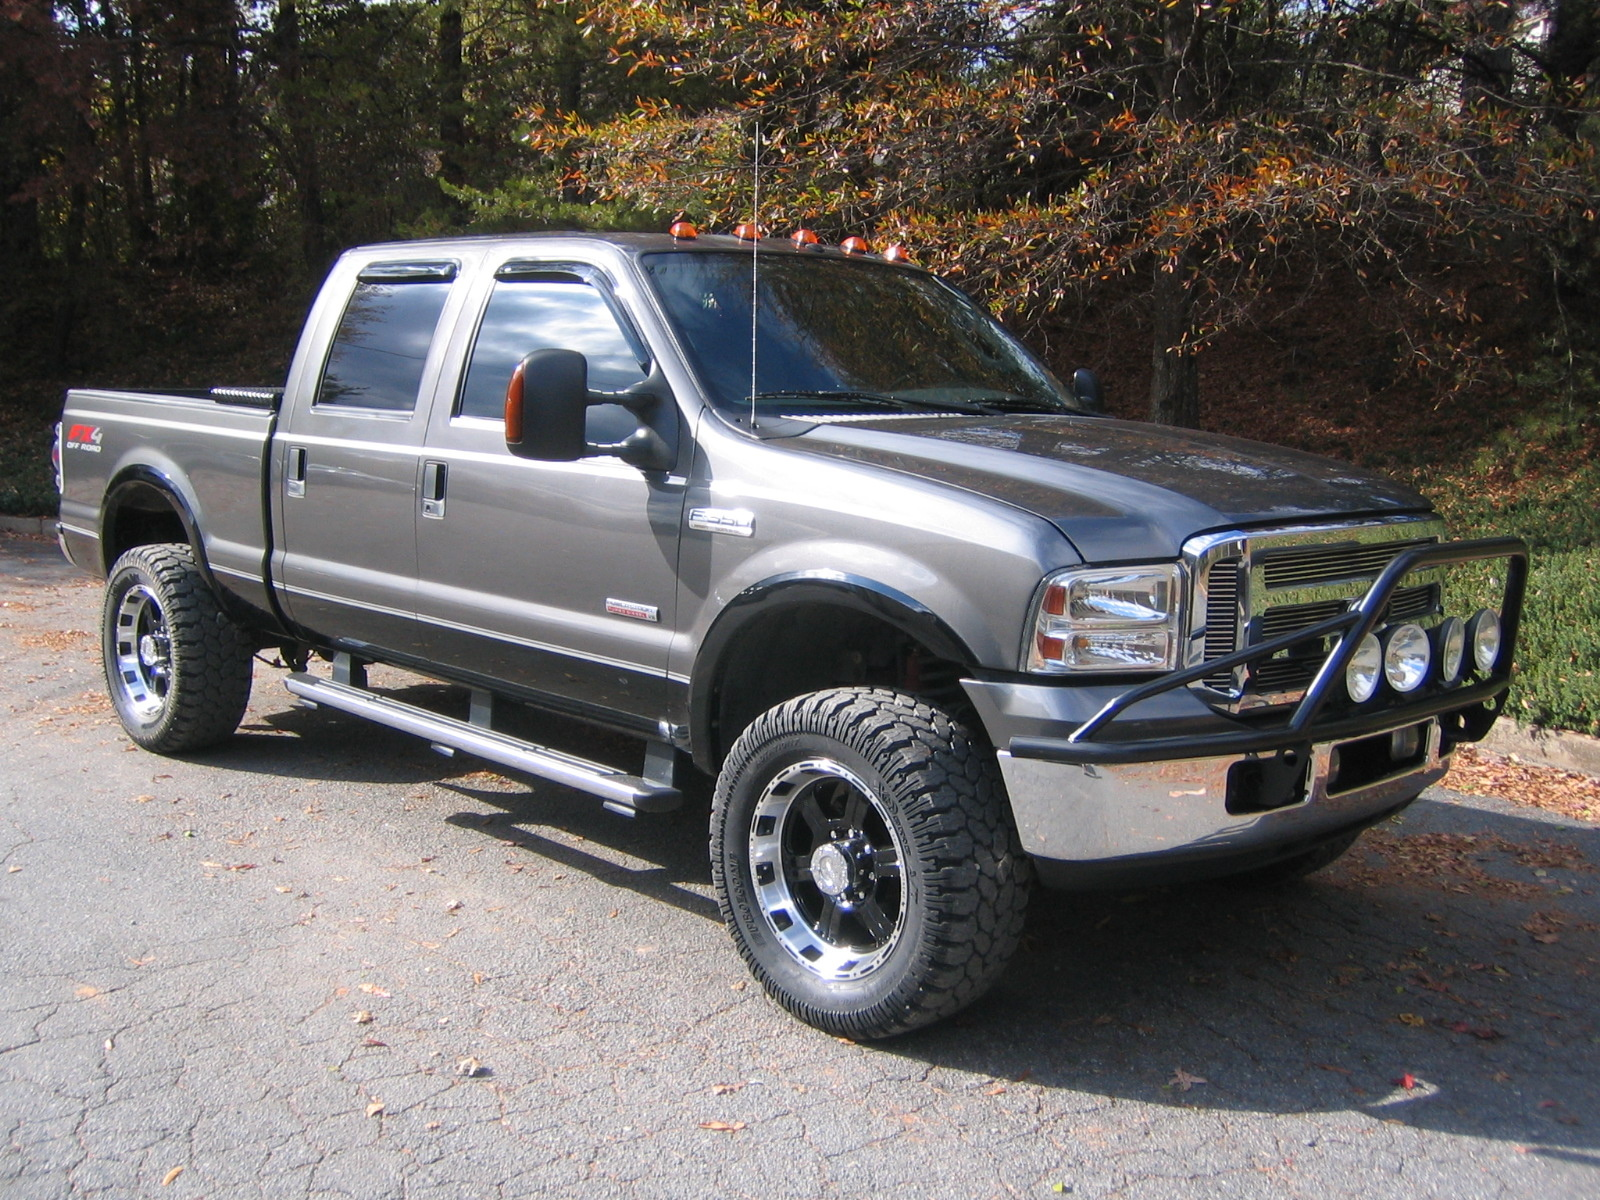 2005 Ford F-350 Super Duty - Overview - CarGurus